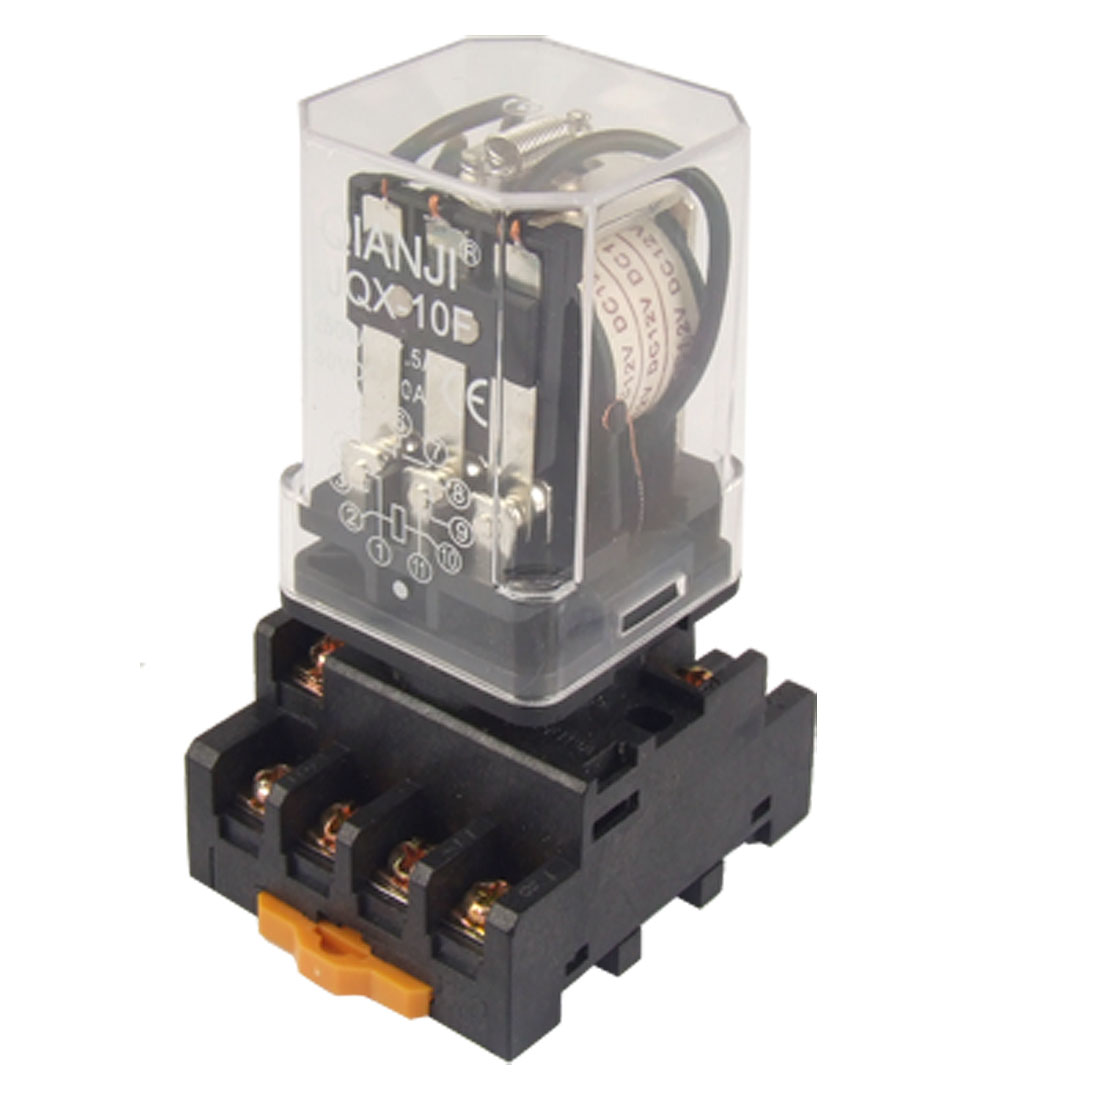 Dc 12v Coil Electromagnetic Relay 11 Pin 3pdt 3 No Nc Jqx 10f W Socket Pickup Voltage